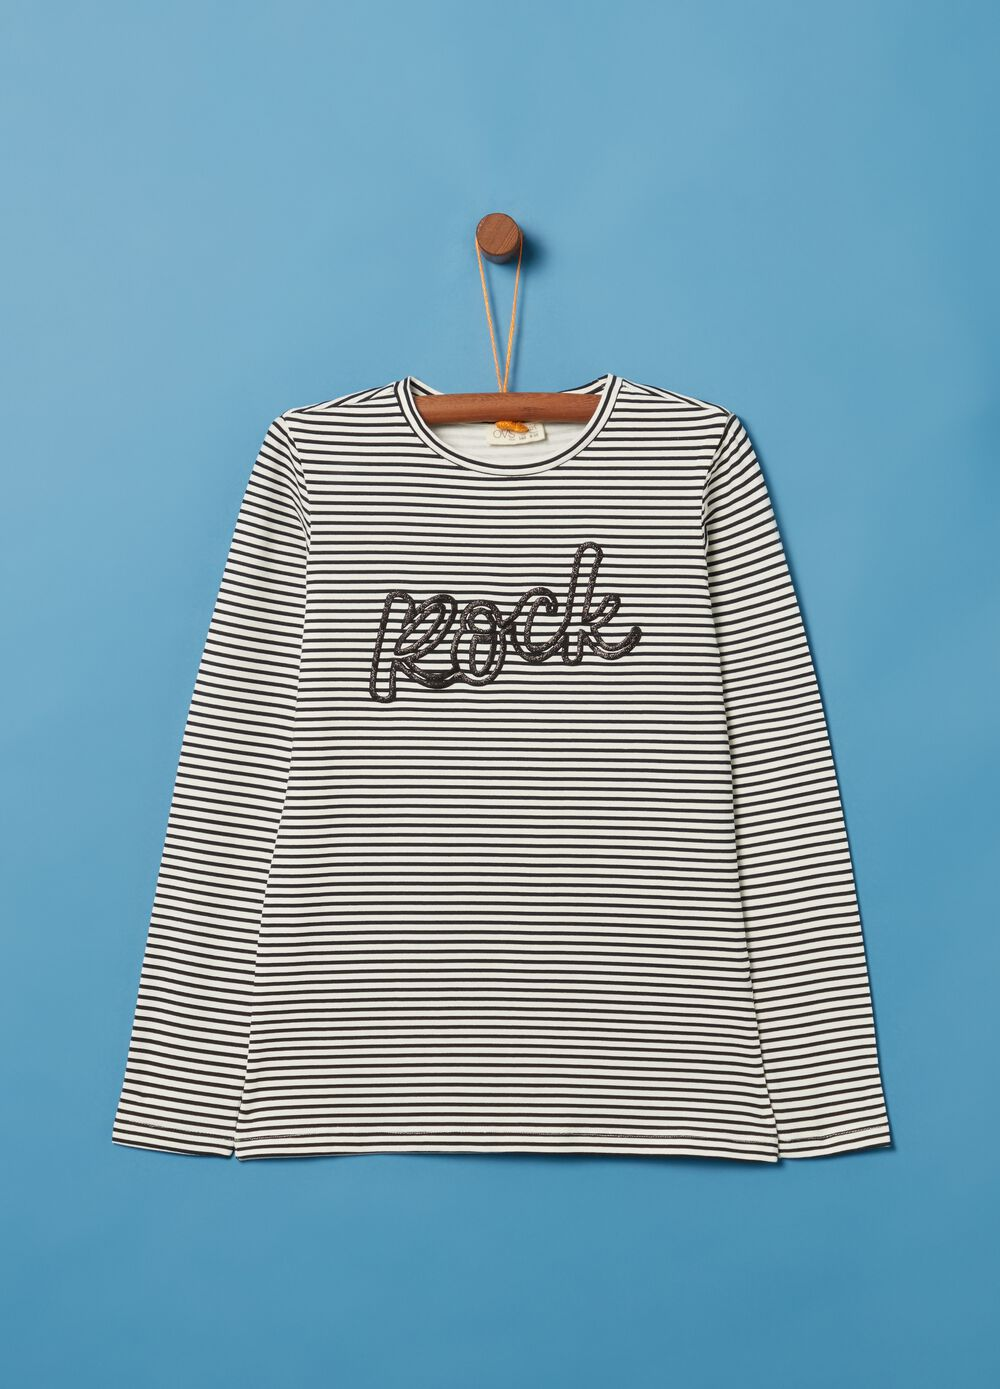 T-shirt with glitter and striped pattern